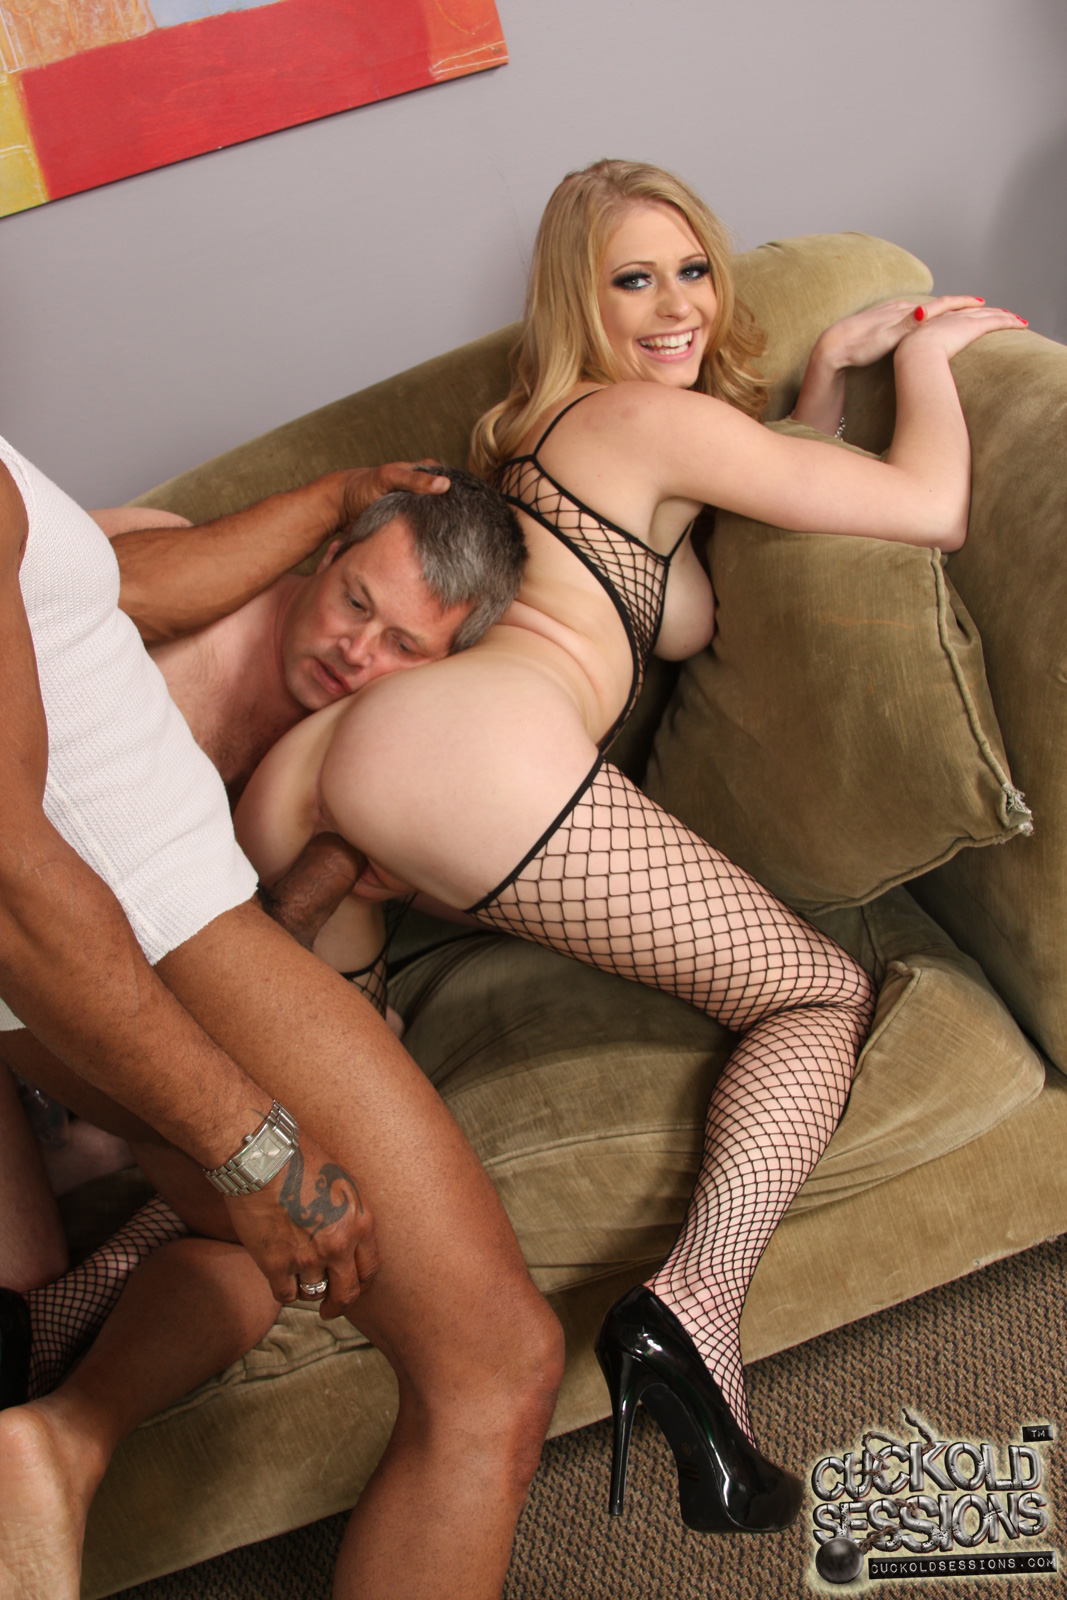 Femdom milf julia ann pegs young boy toy in his tiny asshole 6